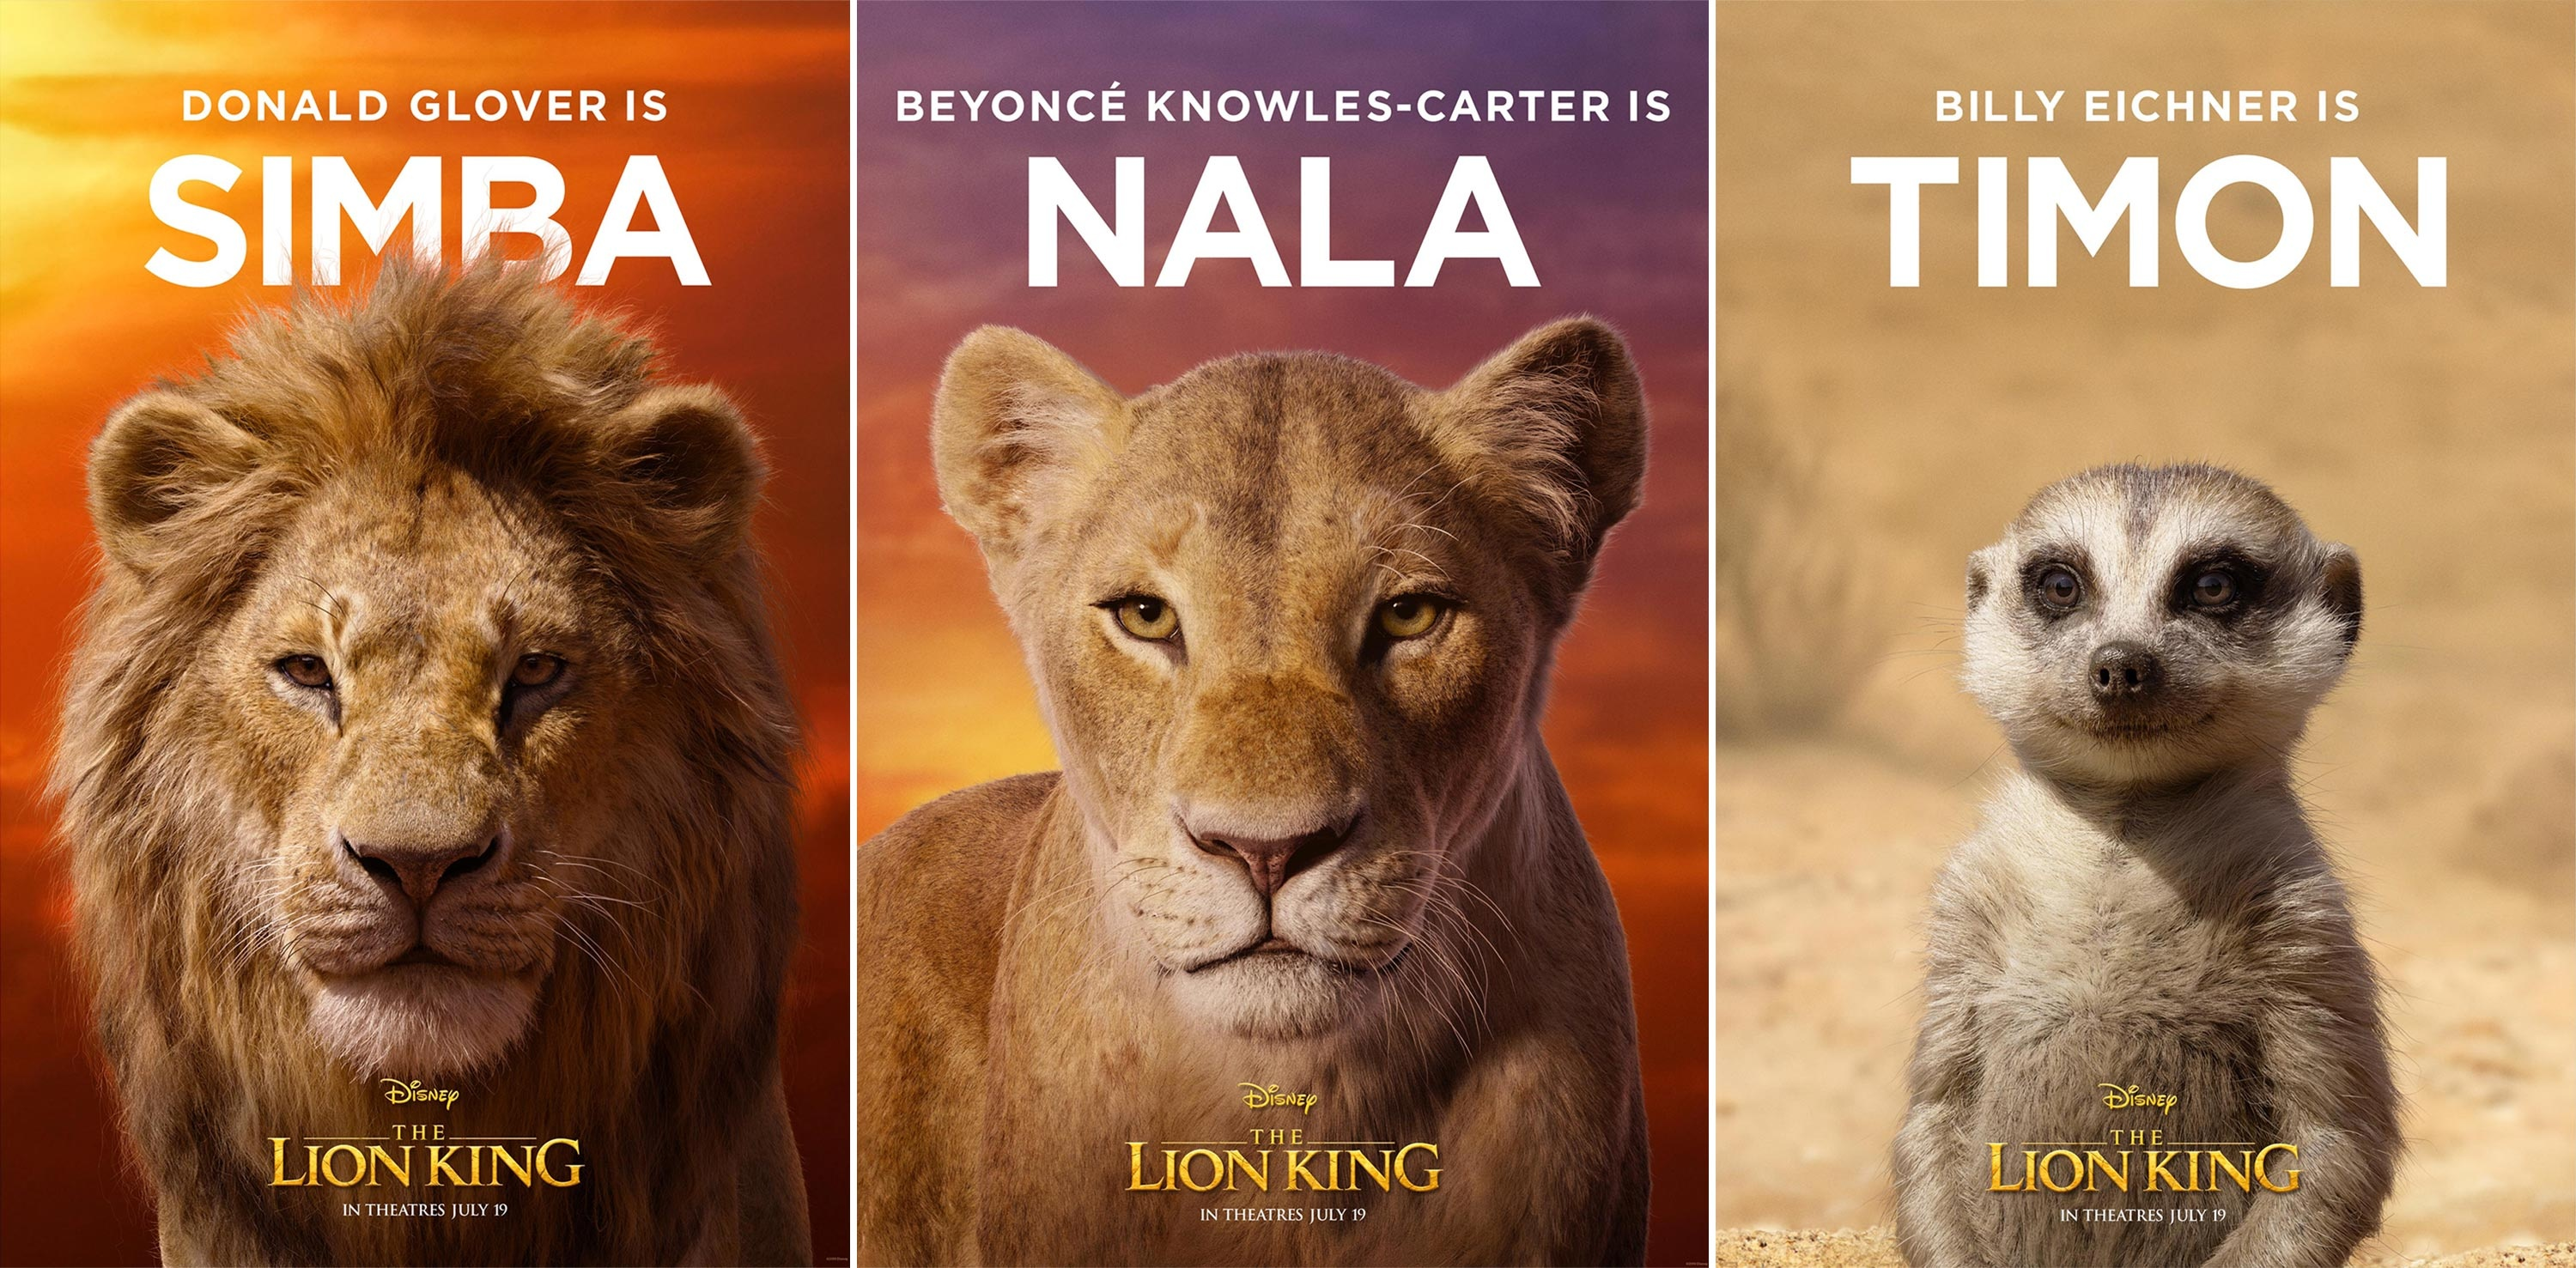 What Is Your Review Of The Lion King 2019 Movie Quora